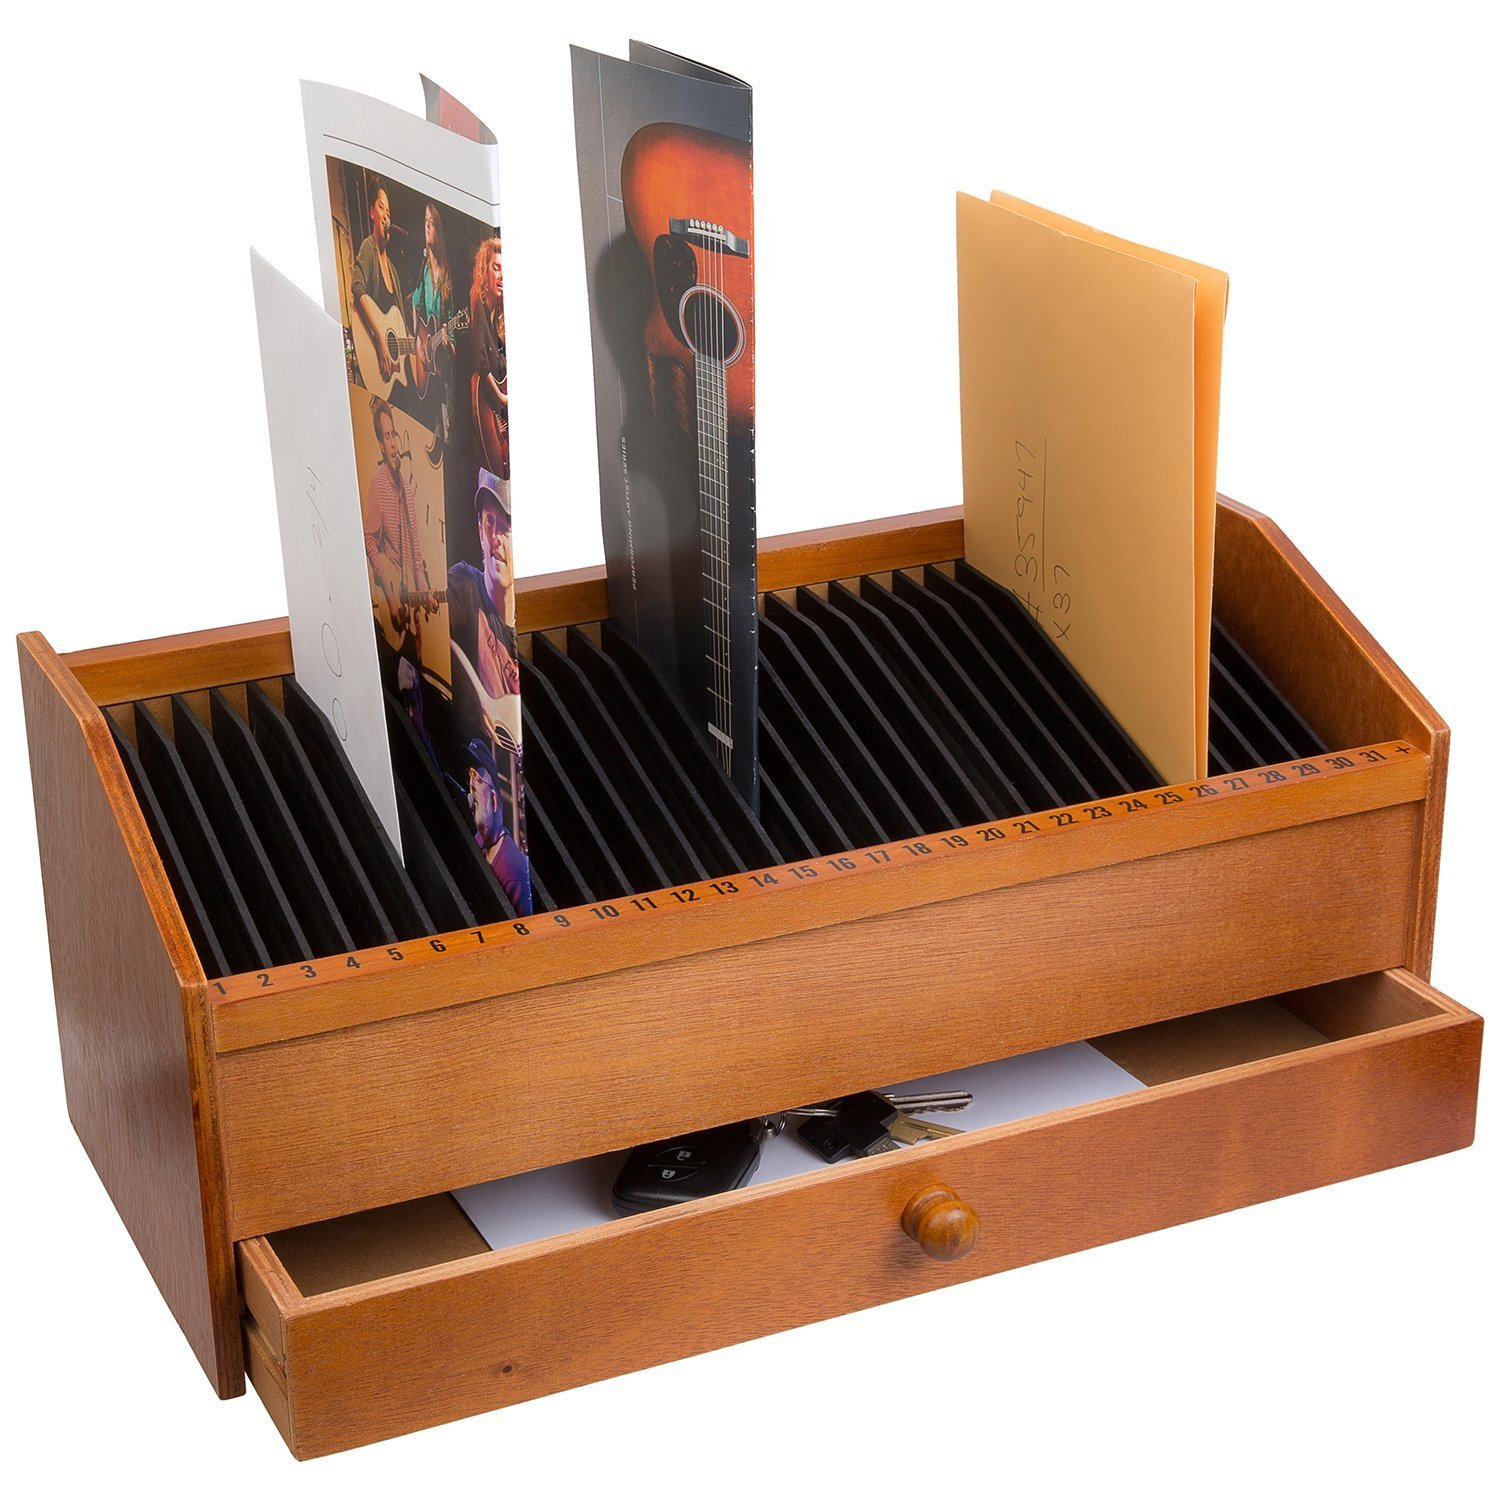 31 SLOT WOODEN BILL/LETTER ORGANIZER WITH DRAWER